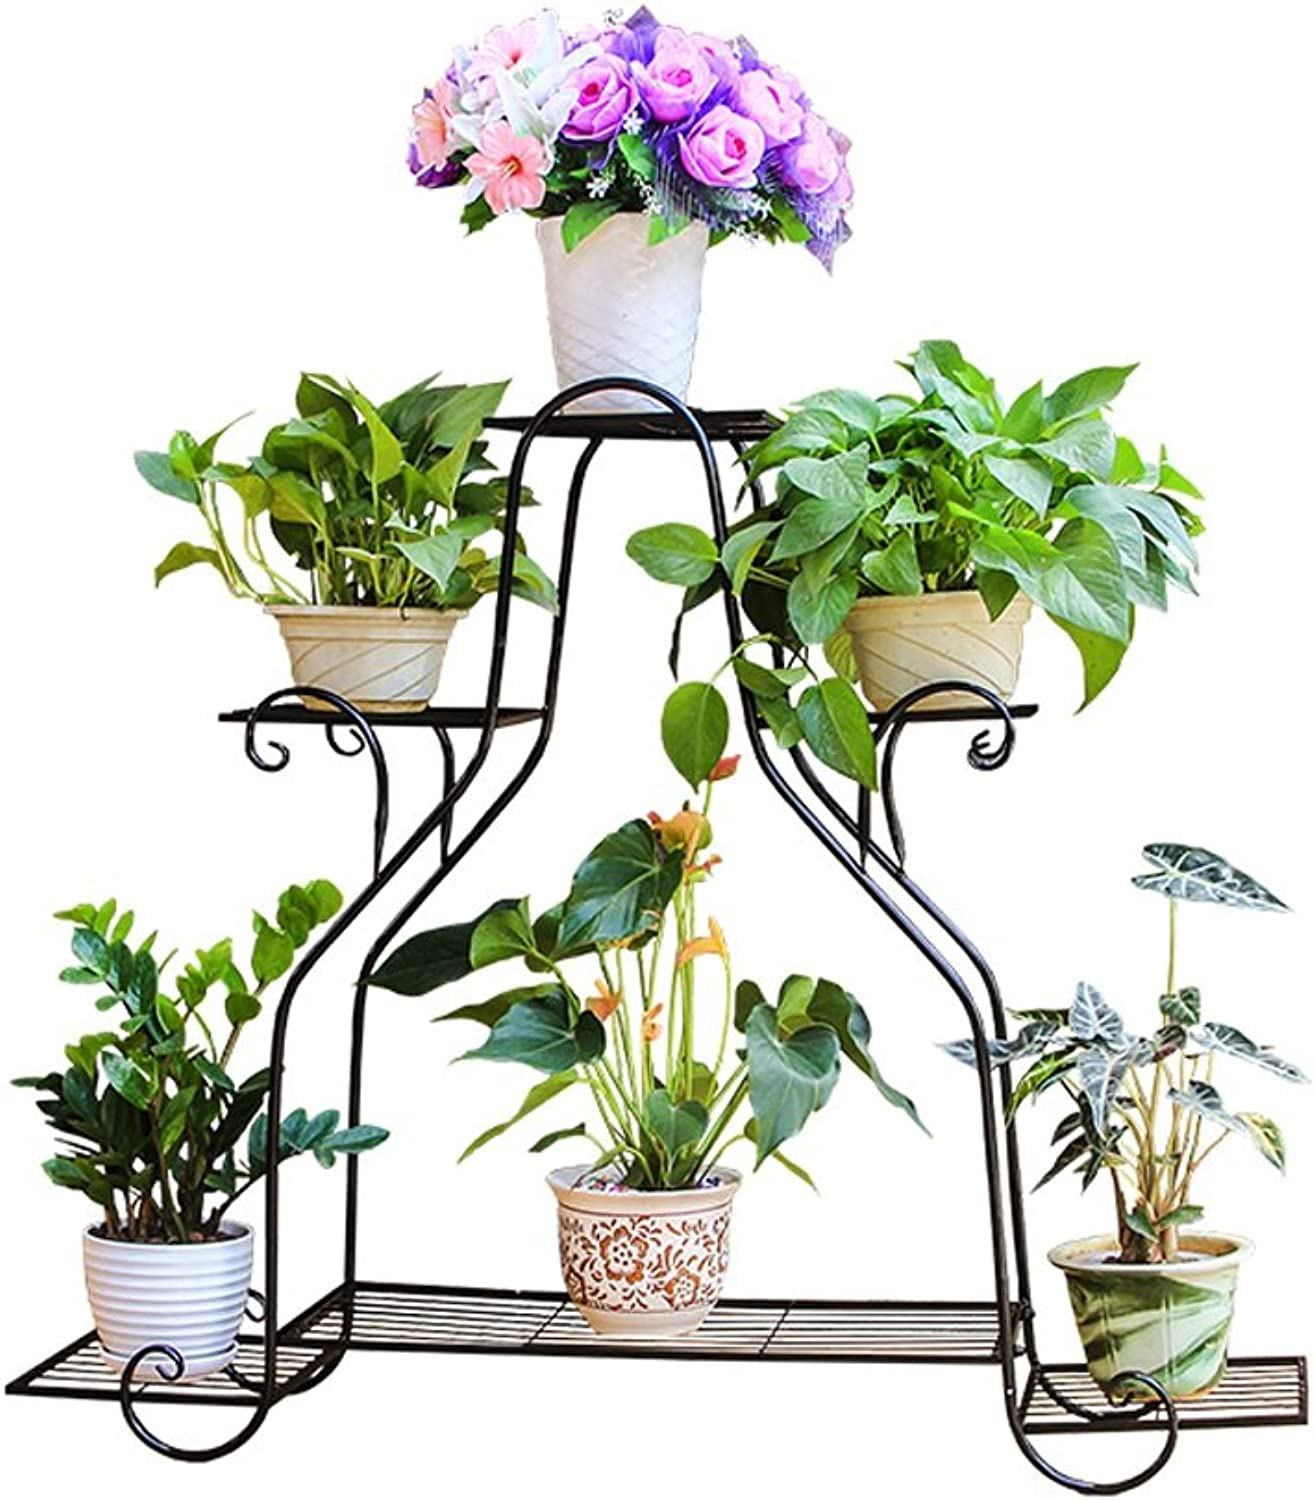 MBD Flower Shelf,Multi-Layer Wrought Iron Floor Pot Rack Indoor Living Room Balcony Green Lugoldu Meat Flower Shelf Outdoor Multifunctional Plant Stairs (color   Black, Size   Small)